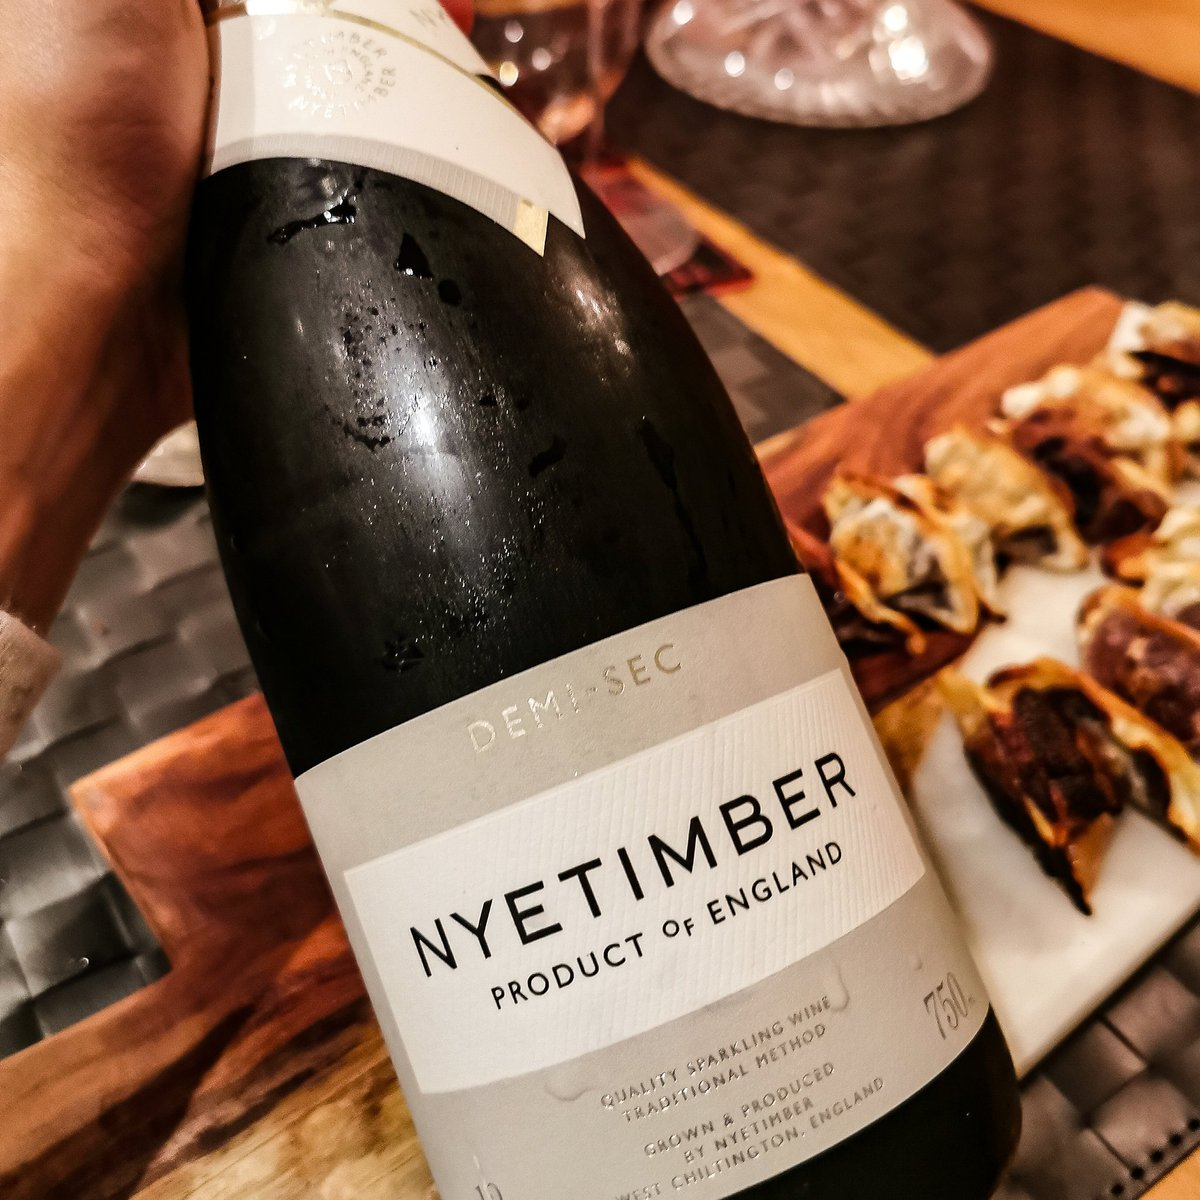 Had an awesome evening with @RobbiePriddle on Thursday, some big, rich wines and a good dollop of sweetness. @Nyetimber Demi Sec was outstanding and disappeared too fast, my first Domus was plump, powerful, engaging red, we ended on a 1998 Sauternes. Not bad for a week night!